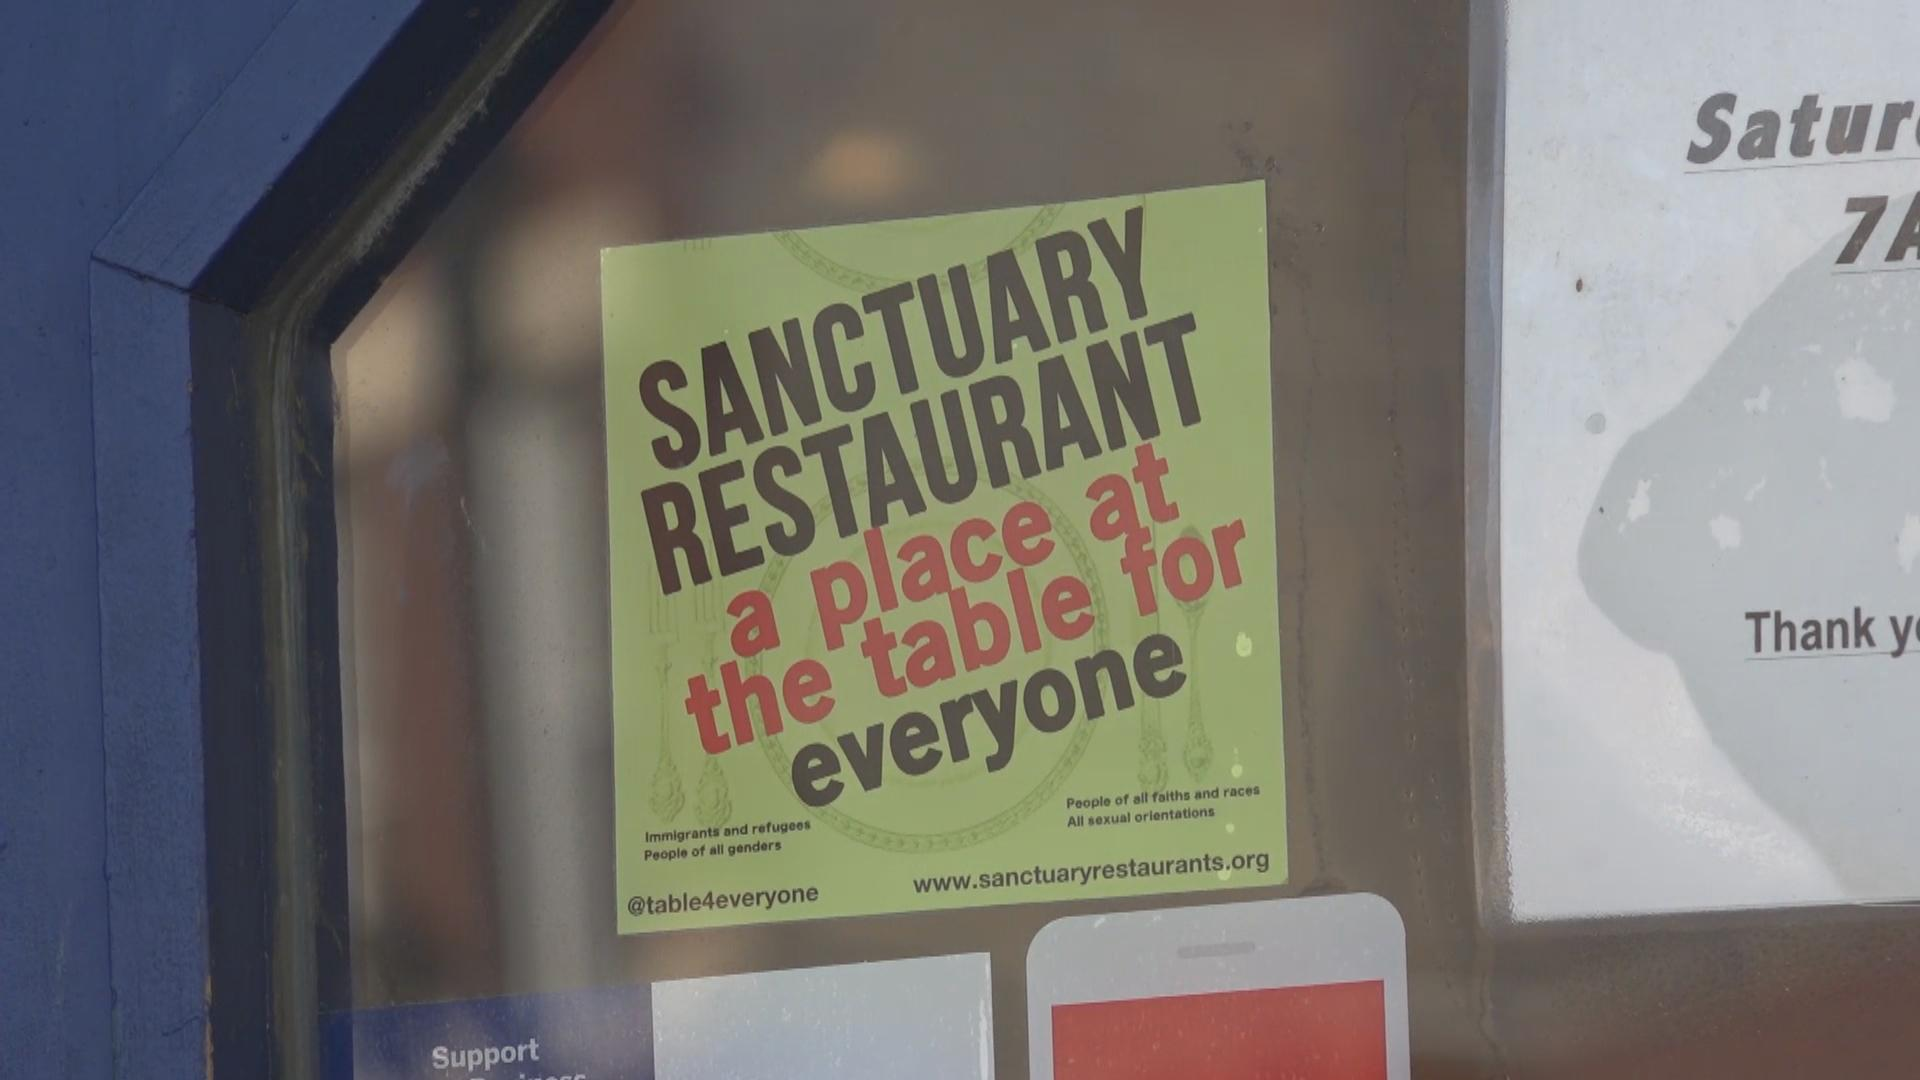 Sanctuary Restaurants Offer Support to Employees, But Little